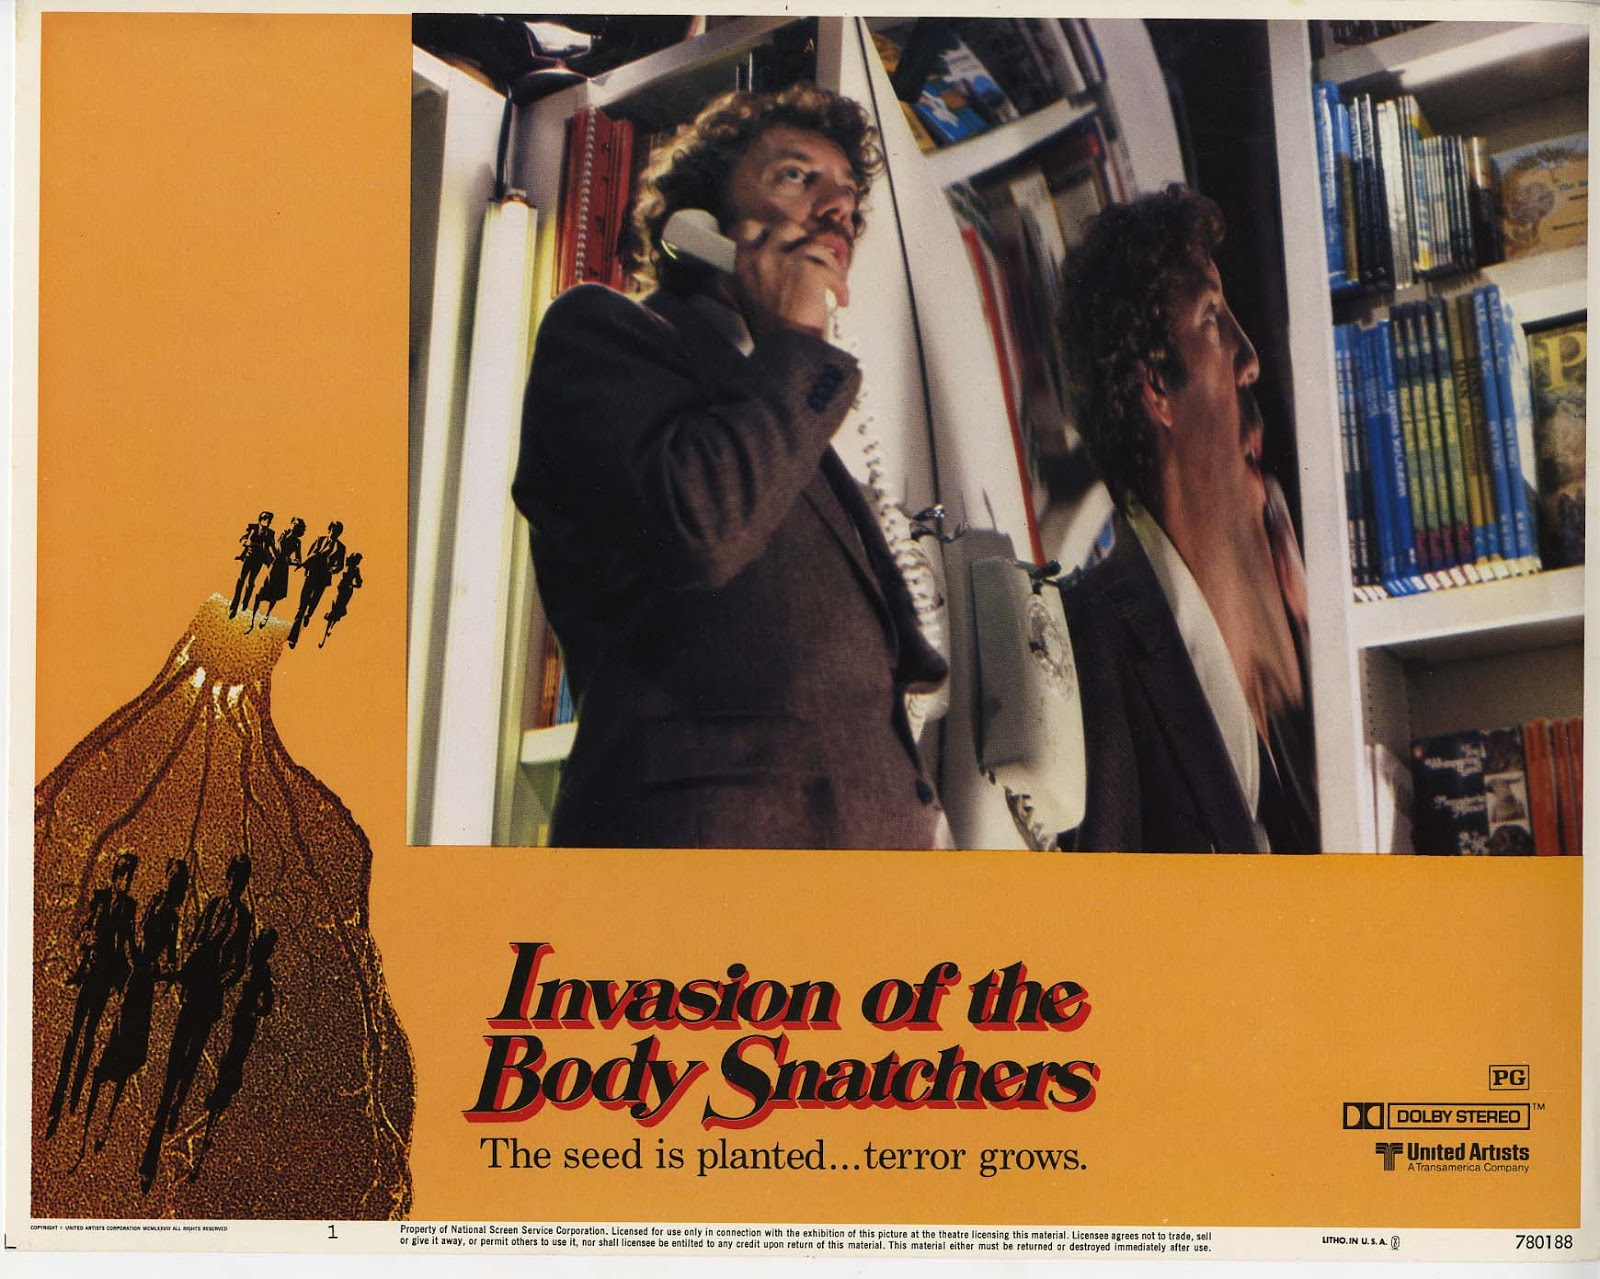 a comparison of the novel invasions of the body snatchers and the war of the worlds Invasion of the body snatchers (1978 spielberg's war of the worlds) nomination for his adaptation of author jack finney's novel the body snatchers written.